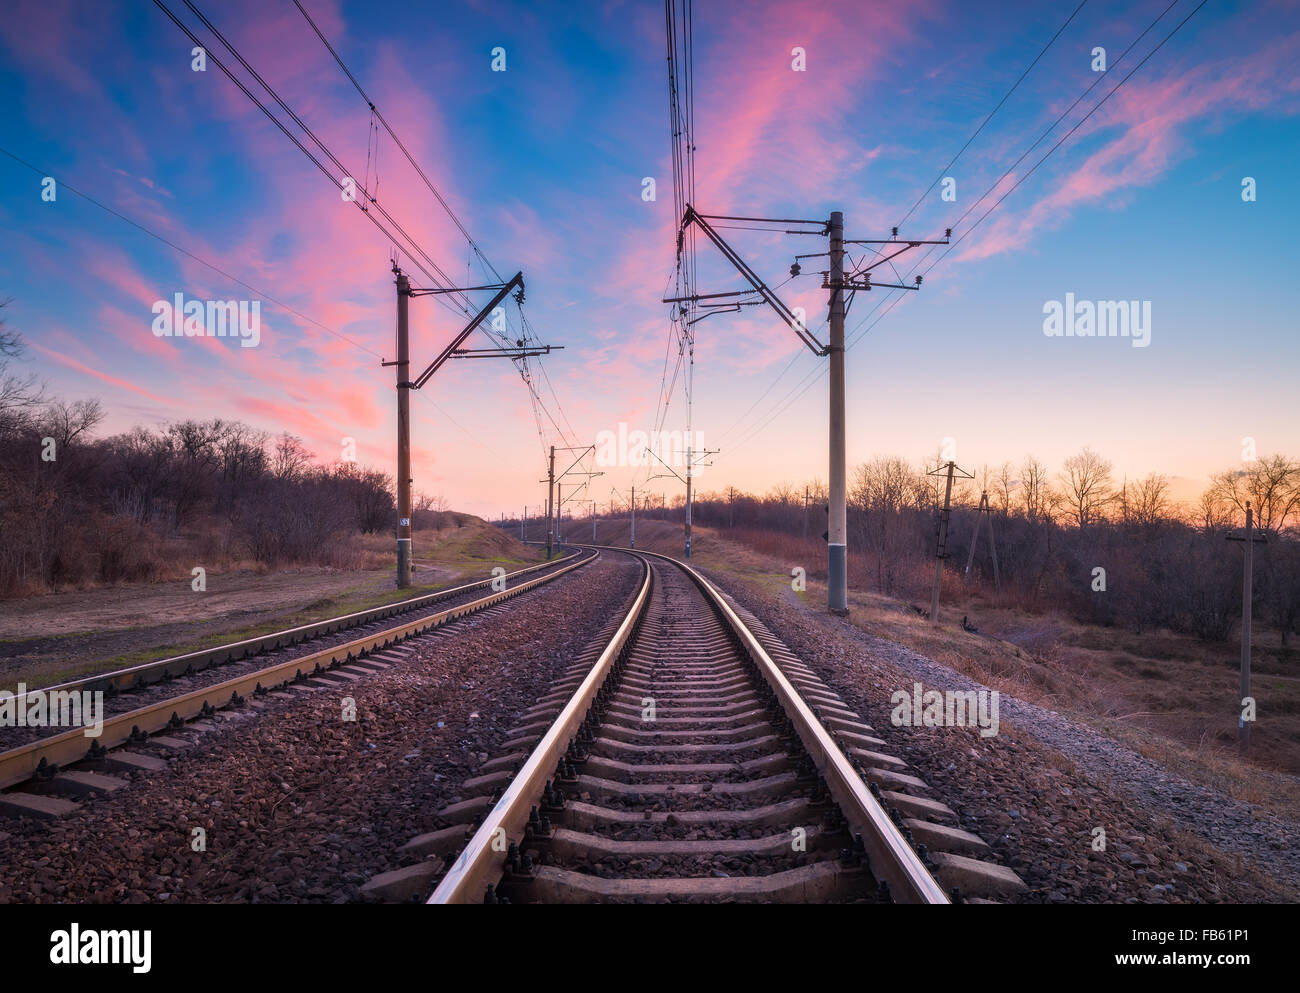 Train platform at sunset. Railroad in Ukraine. Railway landscape. - Stock Image